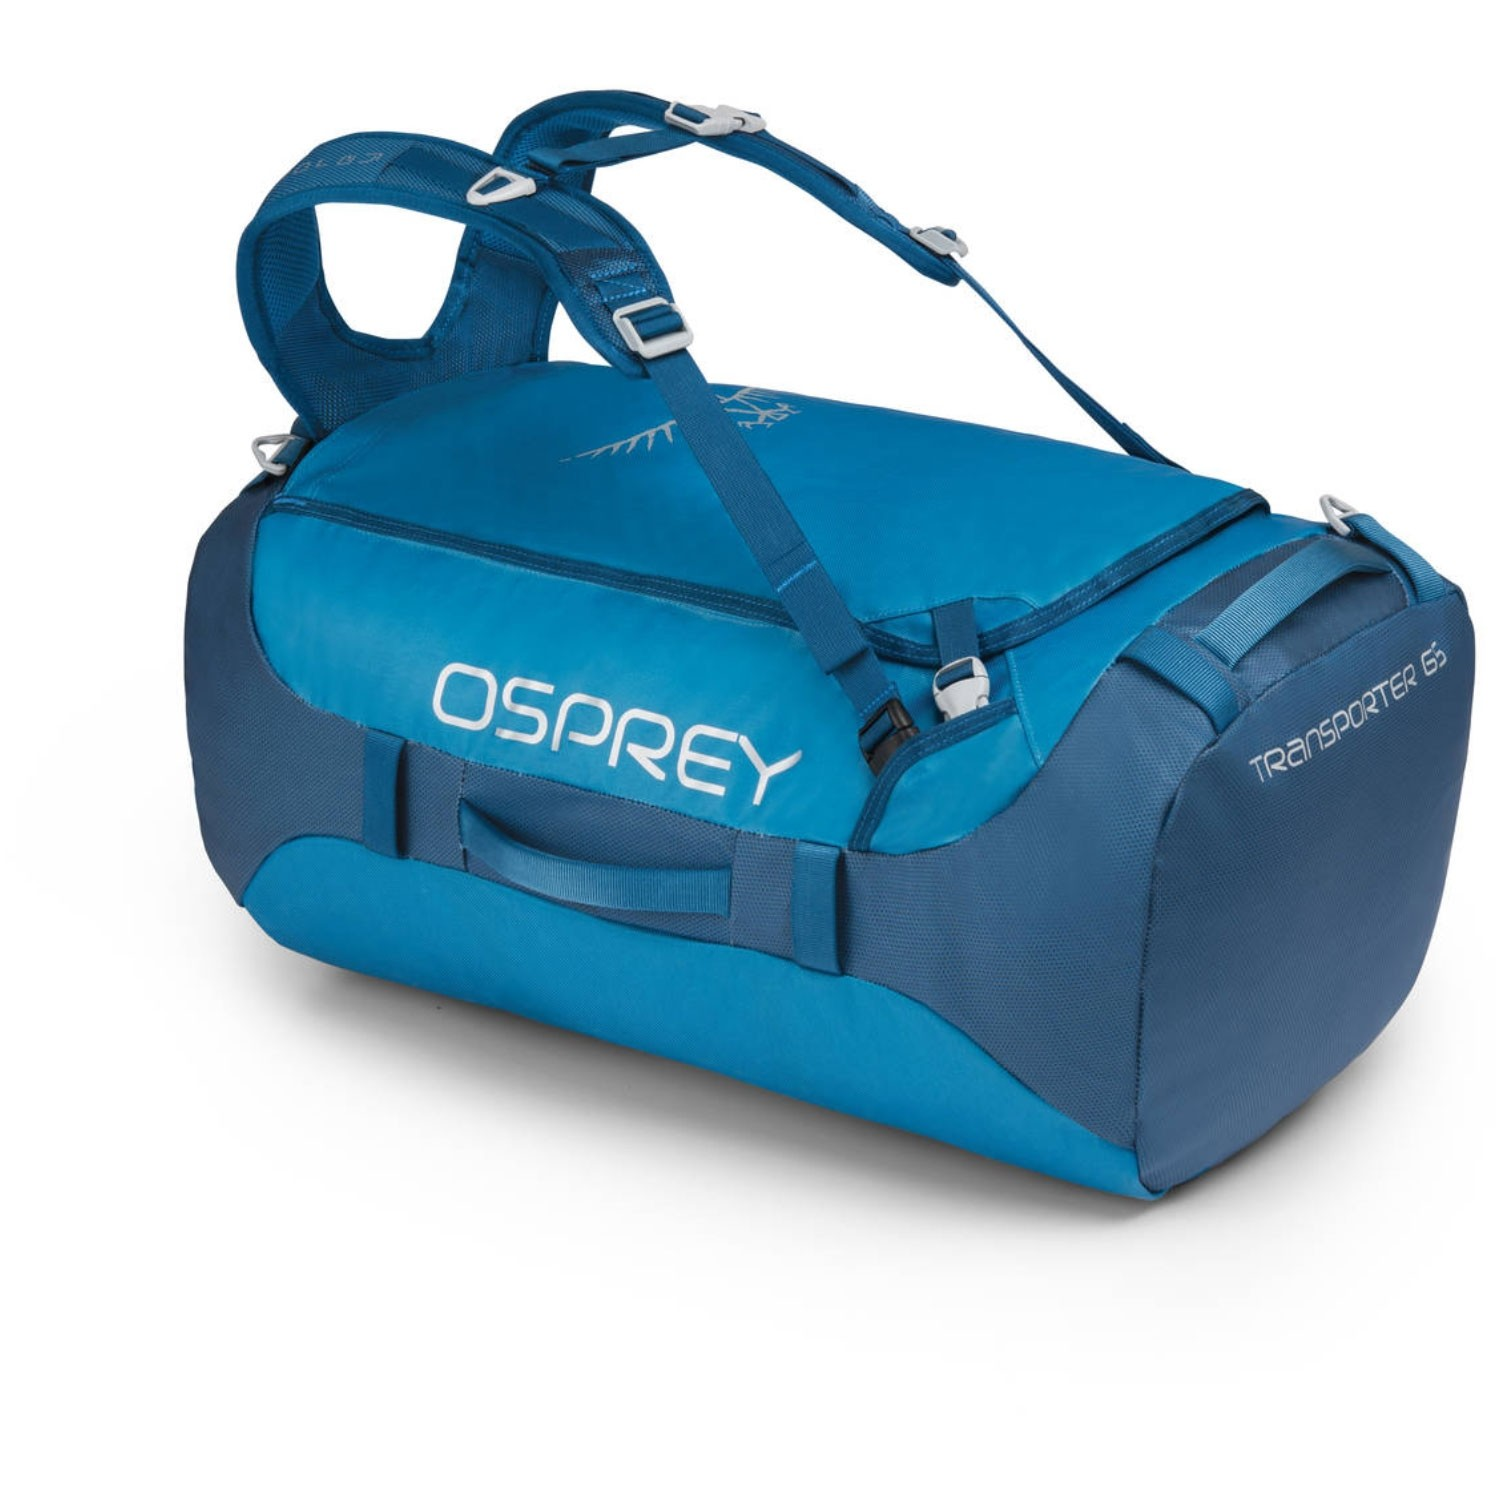 Osprey Transporter 65 Duffle Bag - Kingfisher Blue